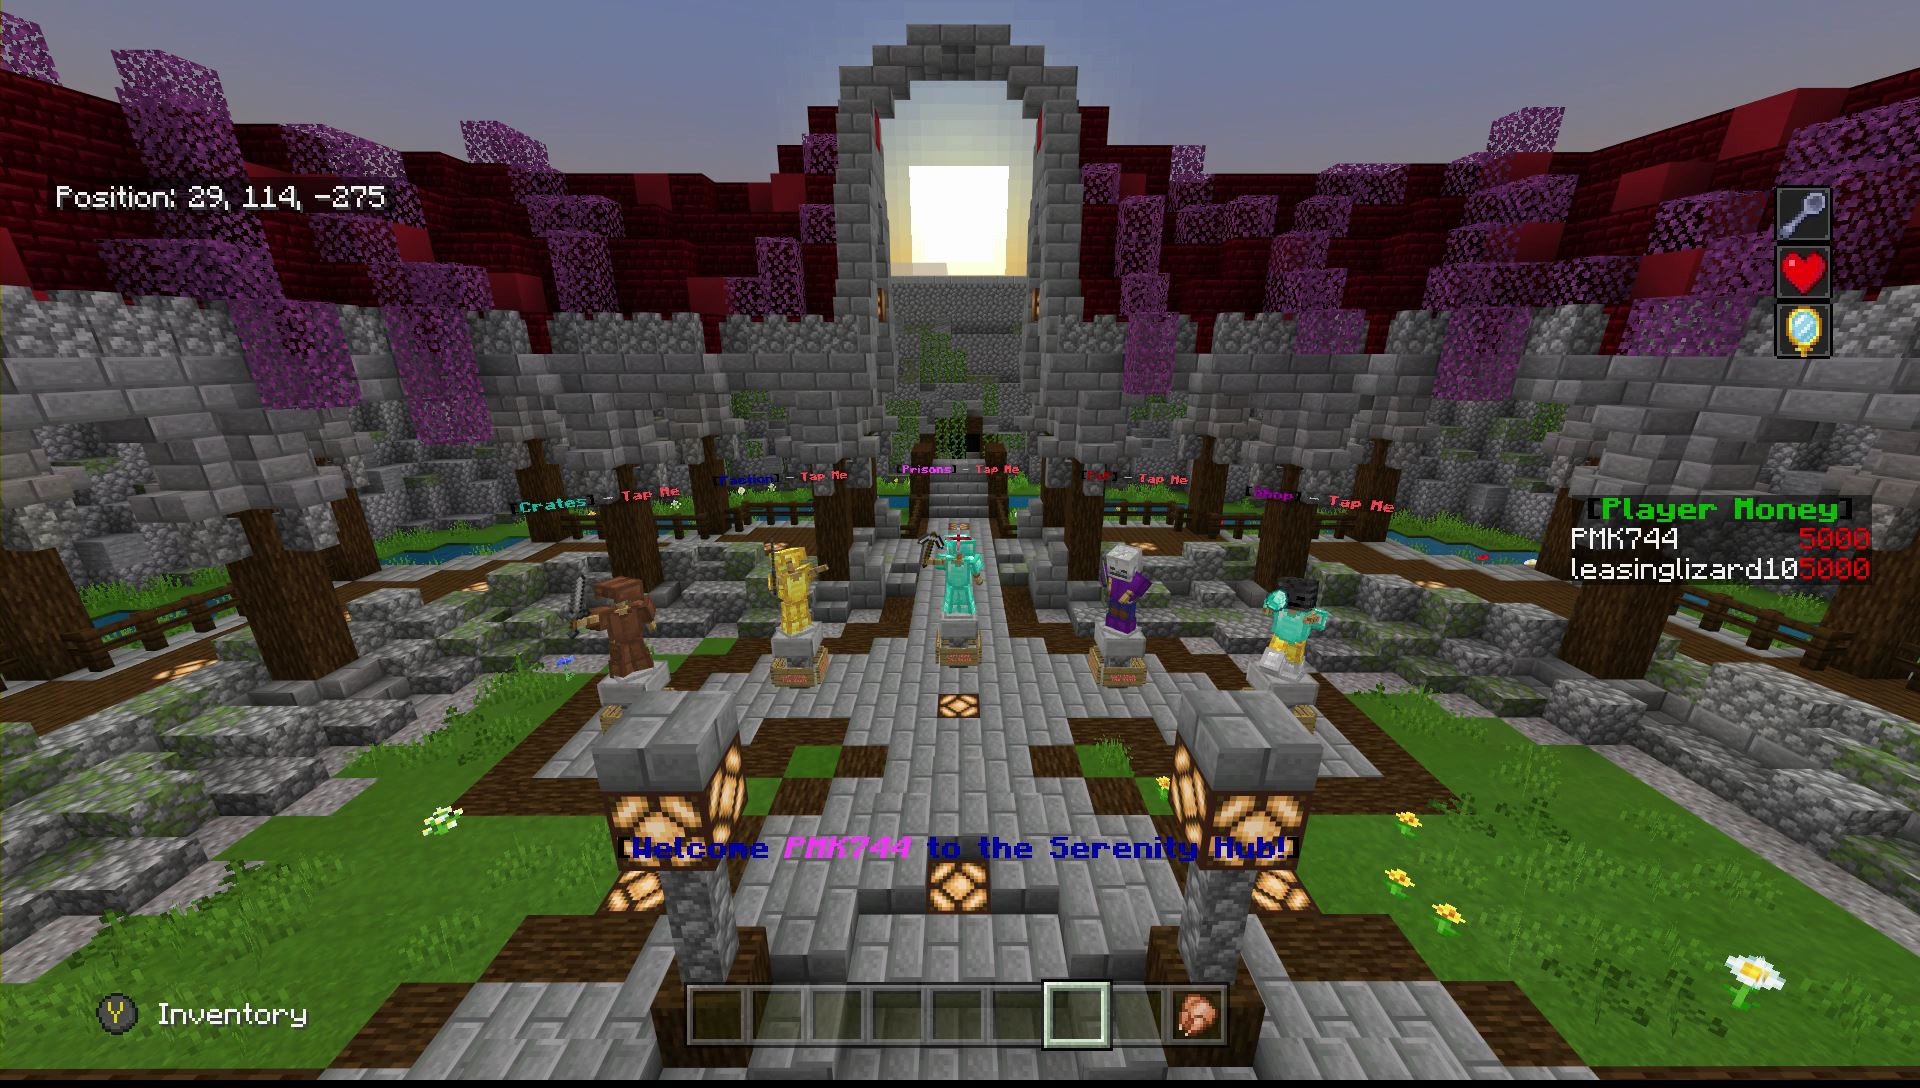 Serenity Kit Pvp Amazing Bedrock Edition Server Like Realm Realms Multiplayer Minecraft Minecraft Forum Minecraft Forum